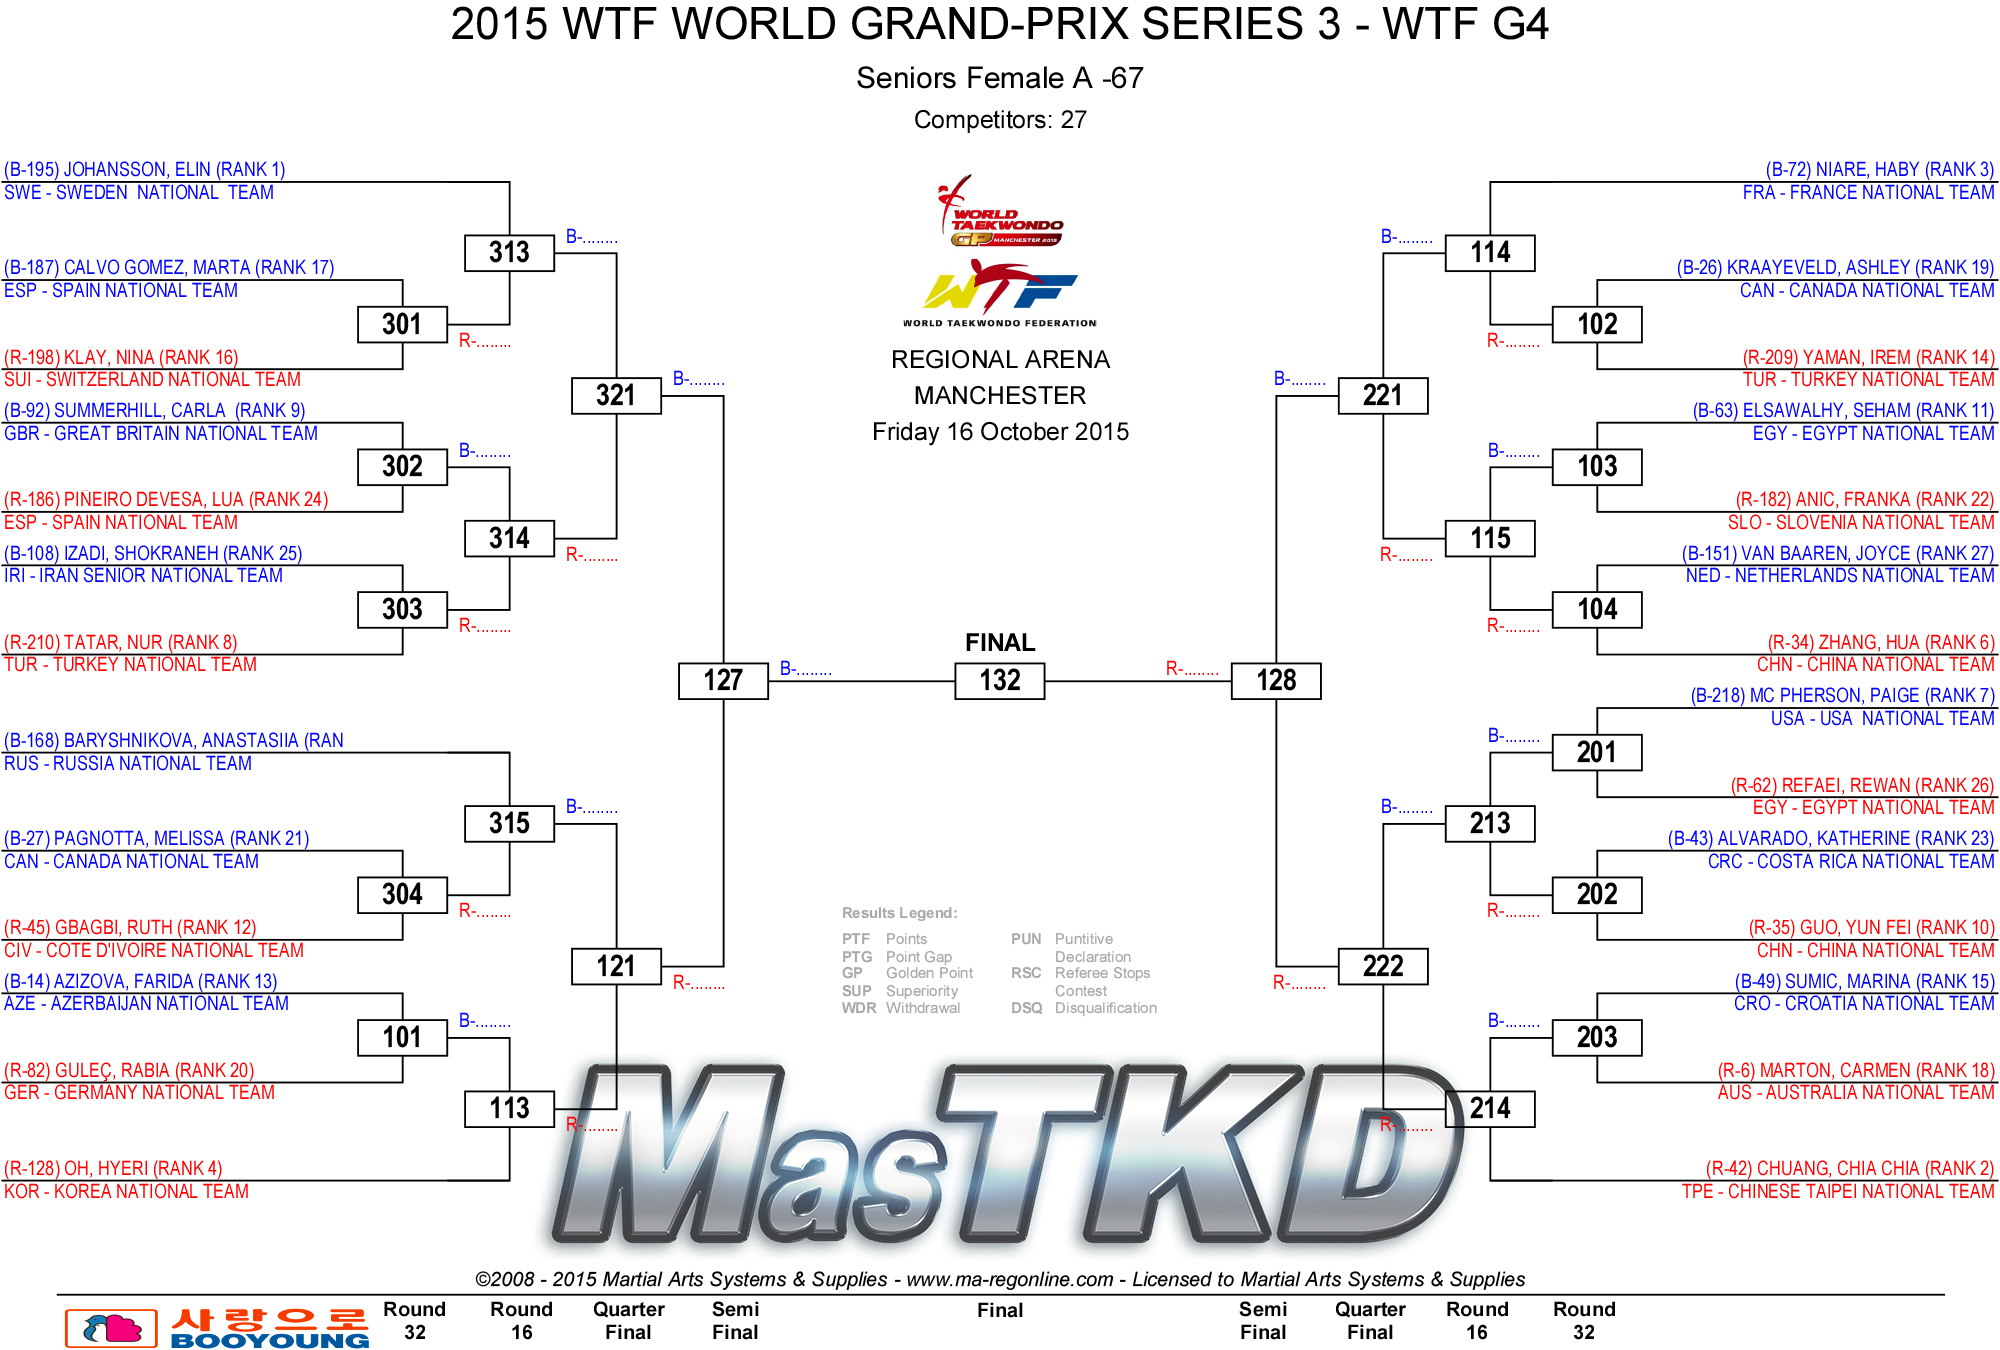 F-67_2015_WTF_WORLD_GRAND-PRIX_SERIES_3_DRAW_D1